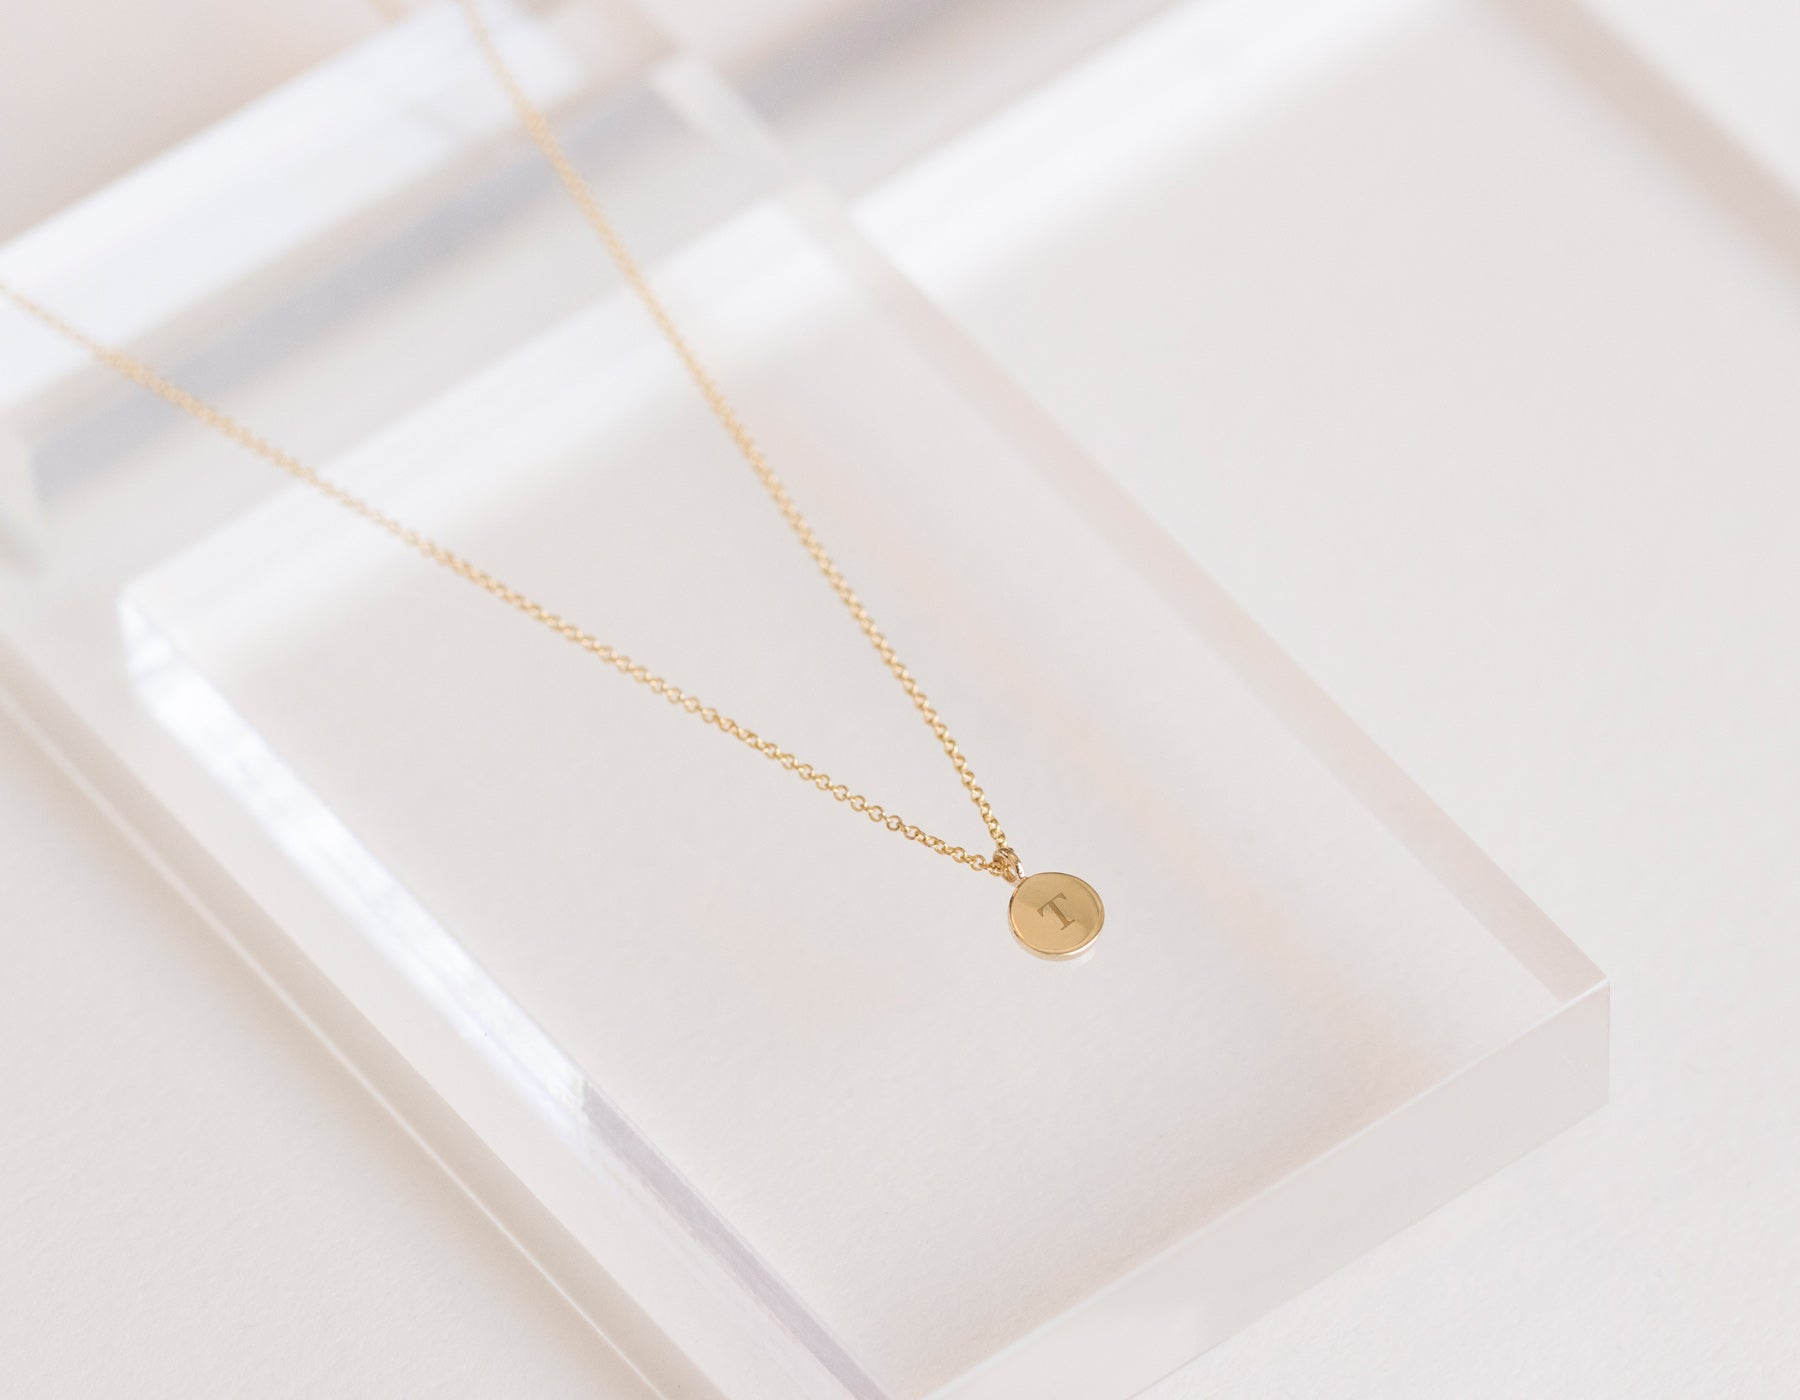 Customized engraving on small disk Initial Necklace 14k yellow gold Vrai and Oro minimalist jewelry circle necklace